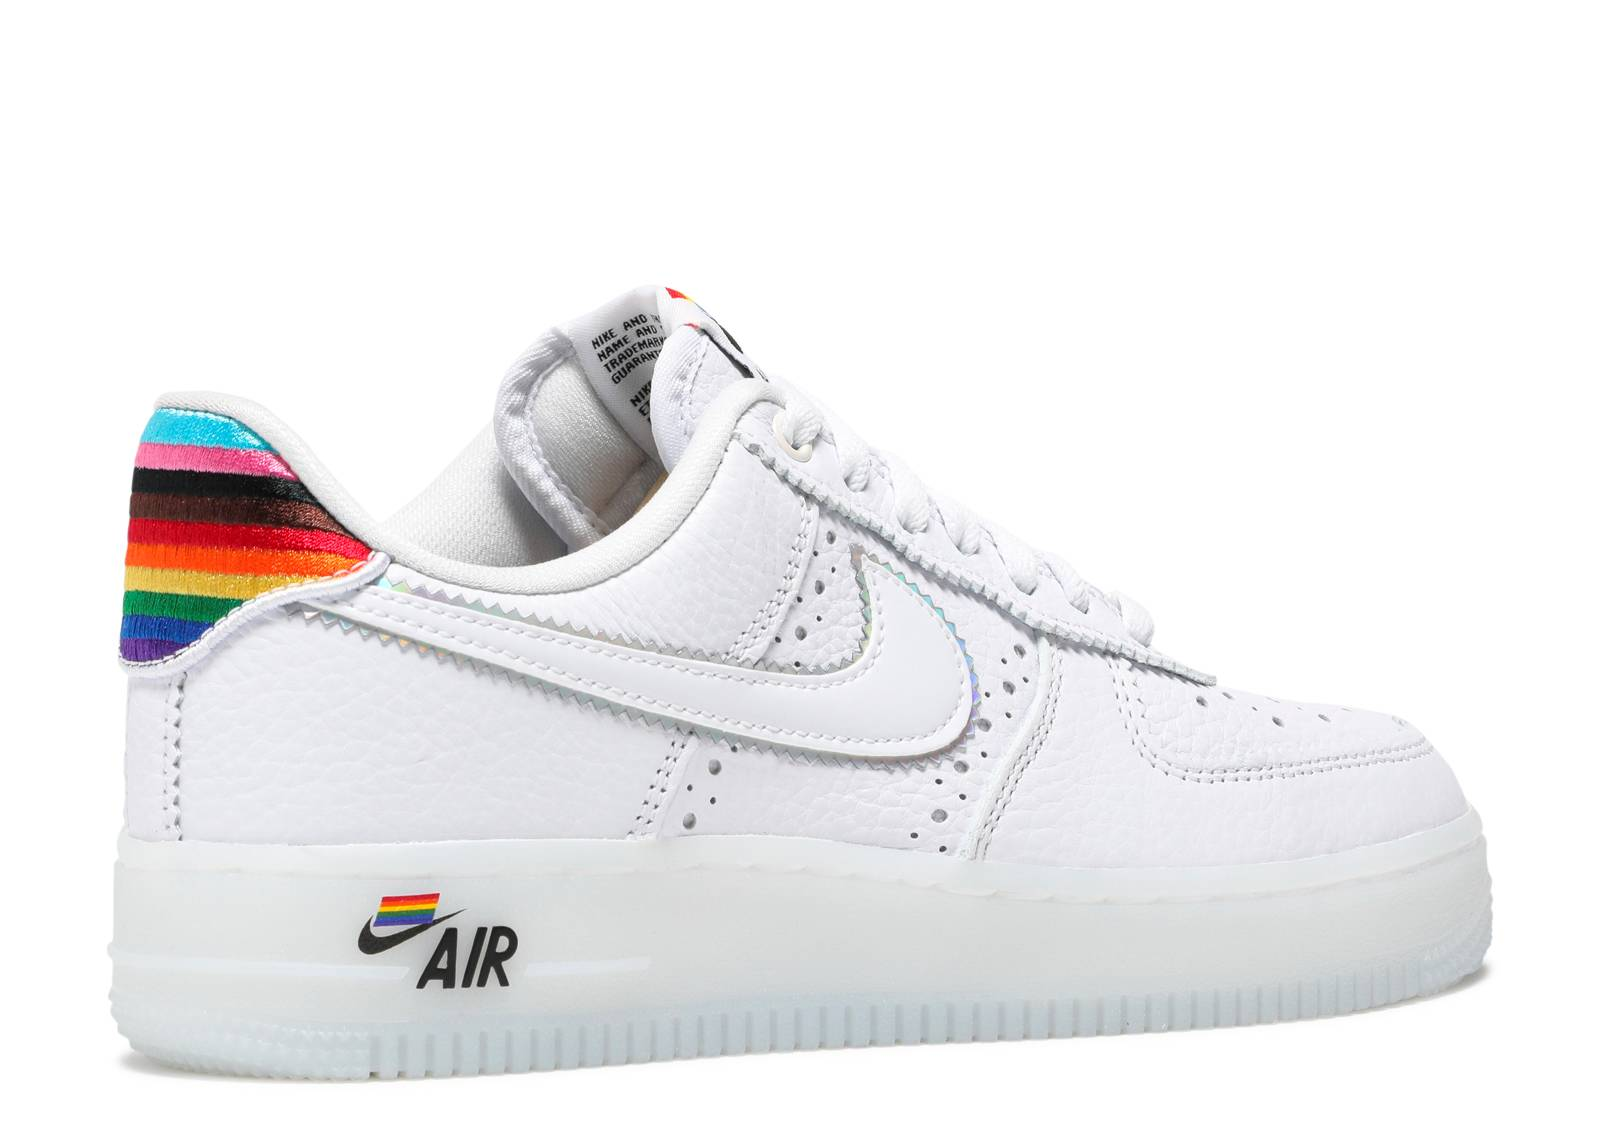 Air Force 1 Low 'Be True' - Nike - CV0258 100 - white/multi-color ...